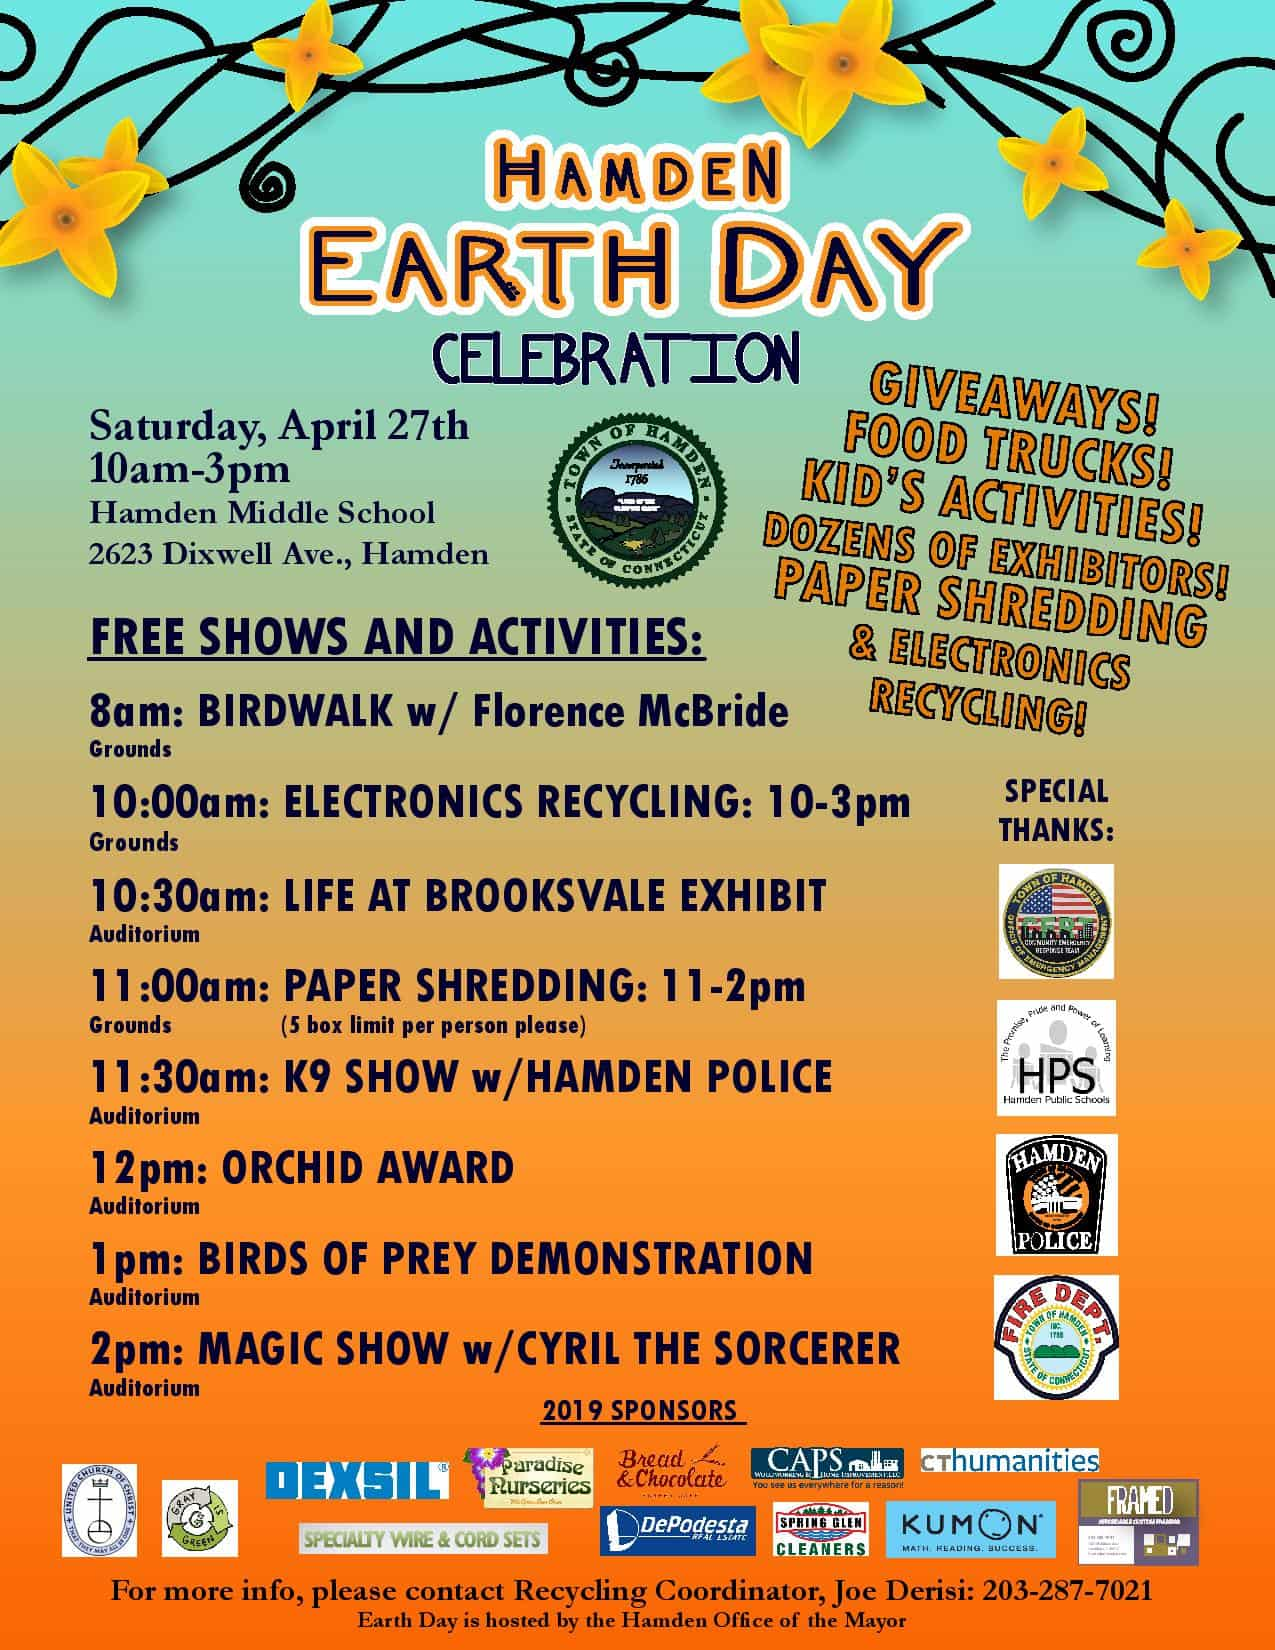 Earth Day Celebration Flyer with Event Schedule